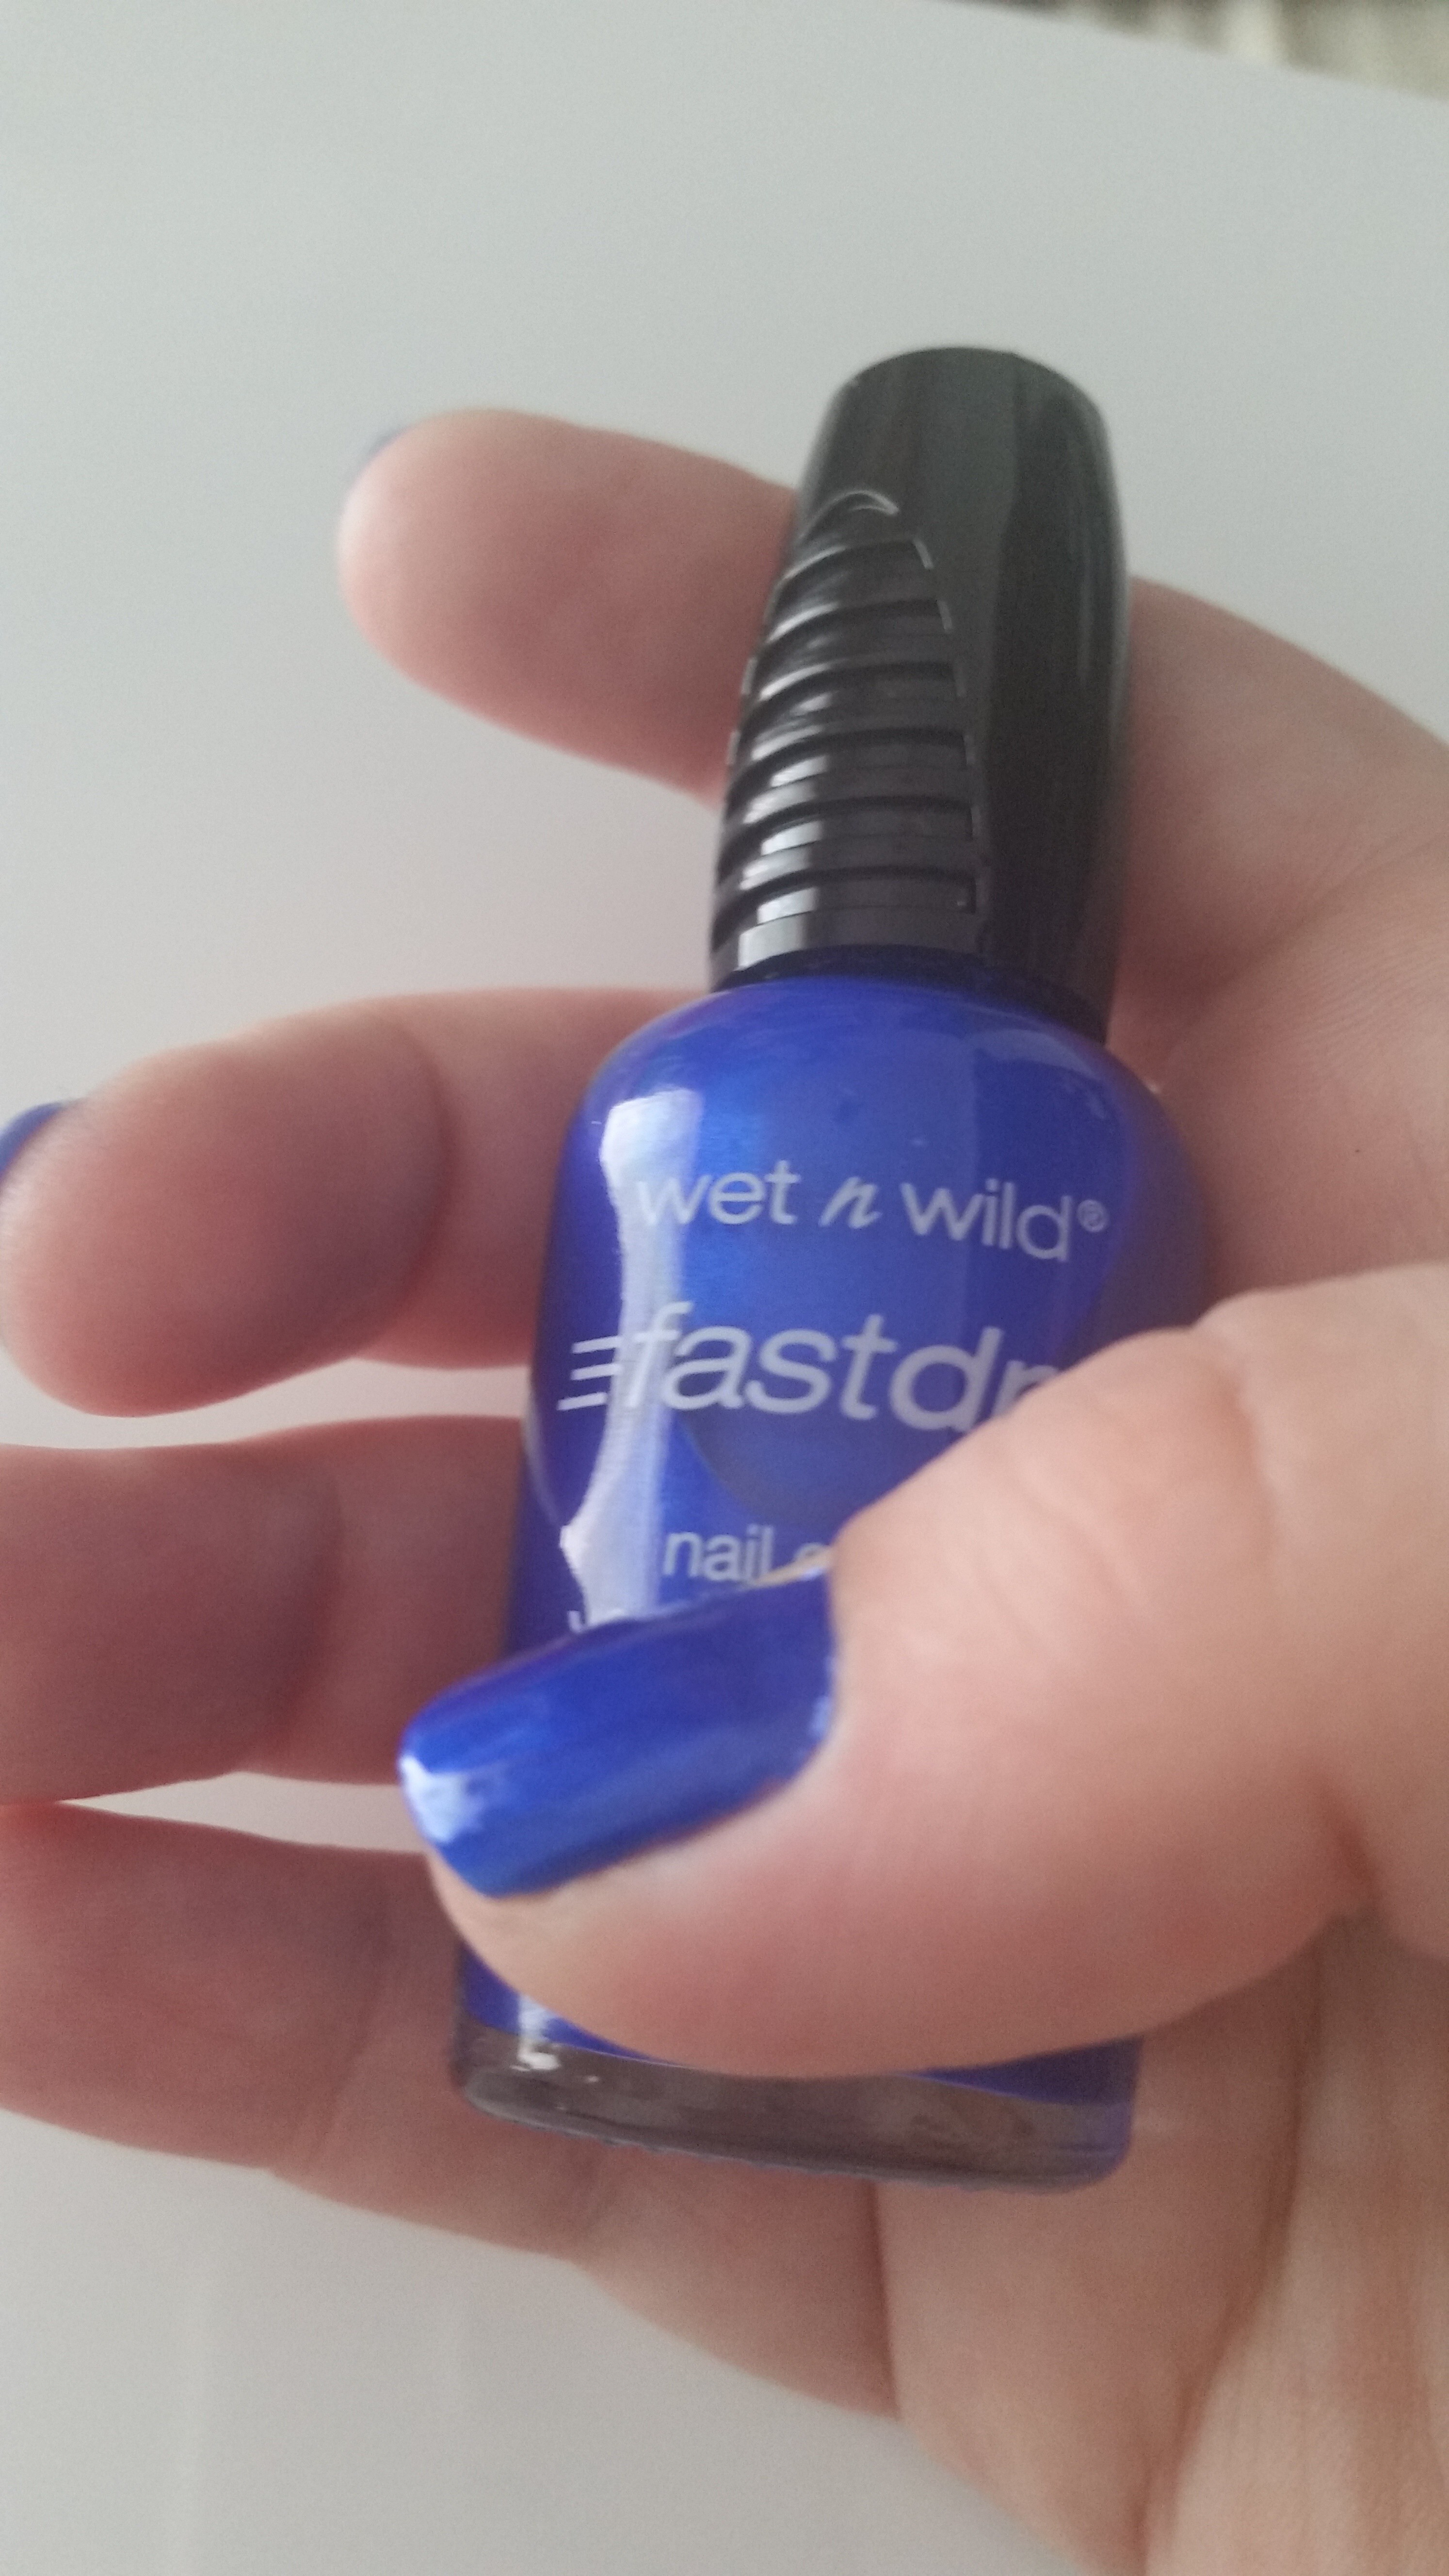 Wet 'n Wild Fast Dry Nail Color